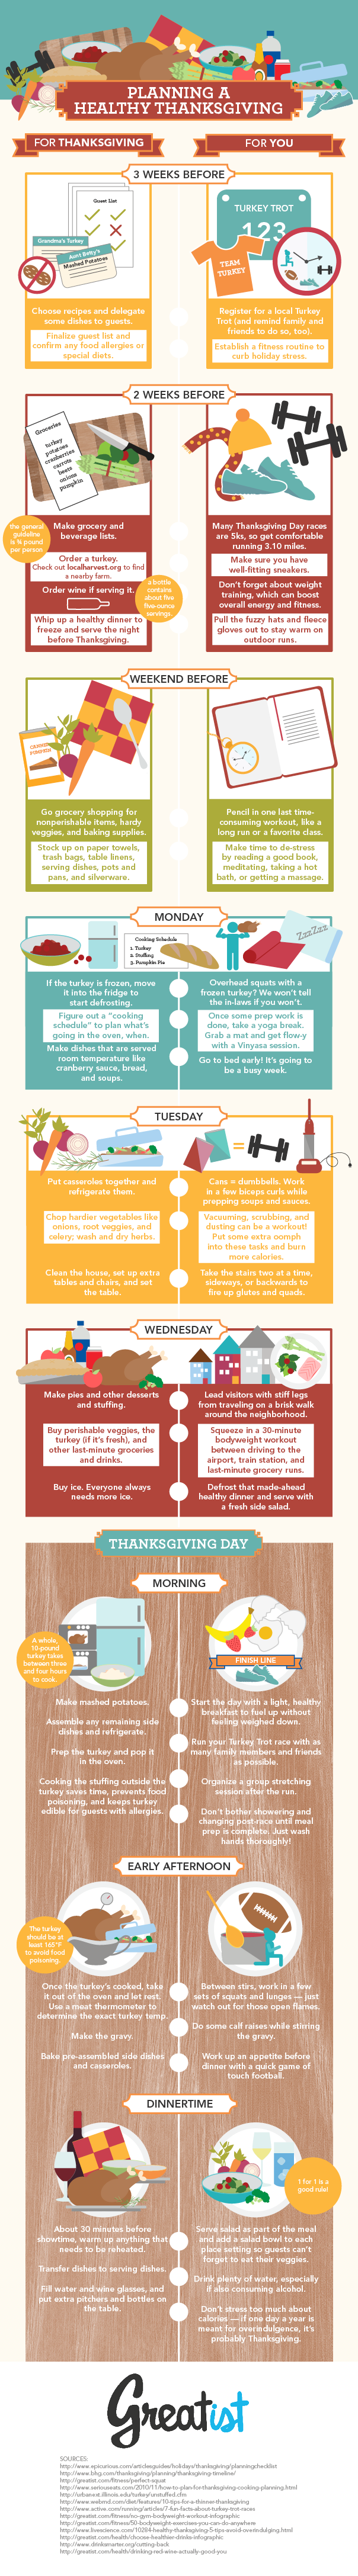 2013-11-12-Thanksgiving_Infographic_604_V5.png